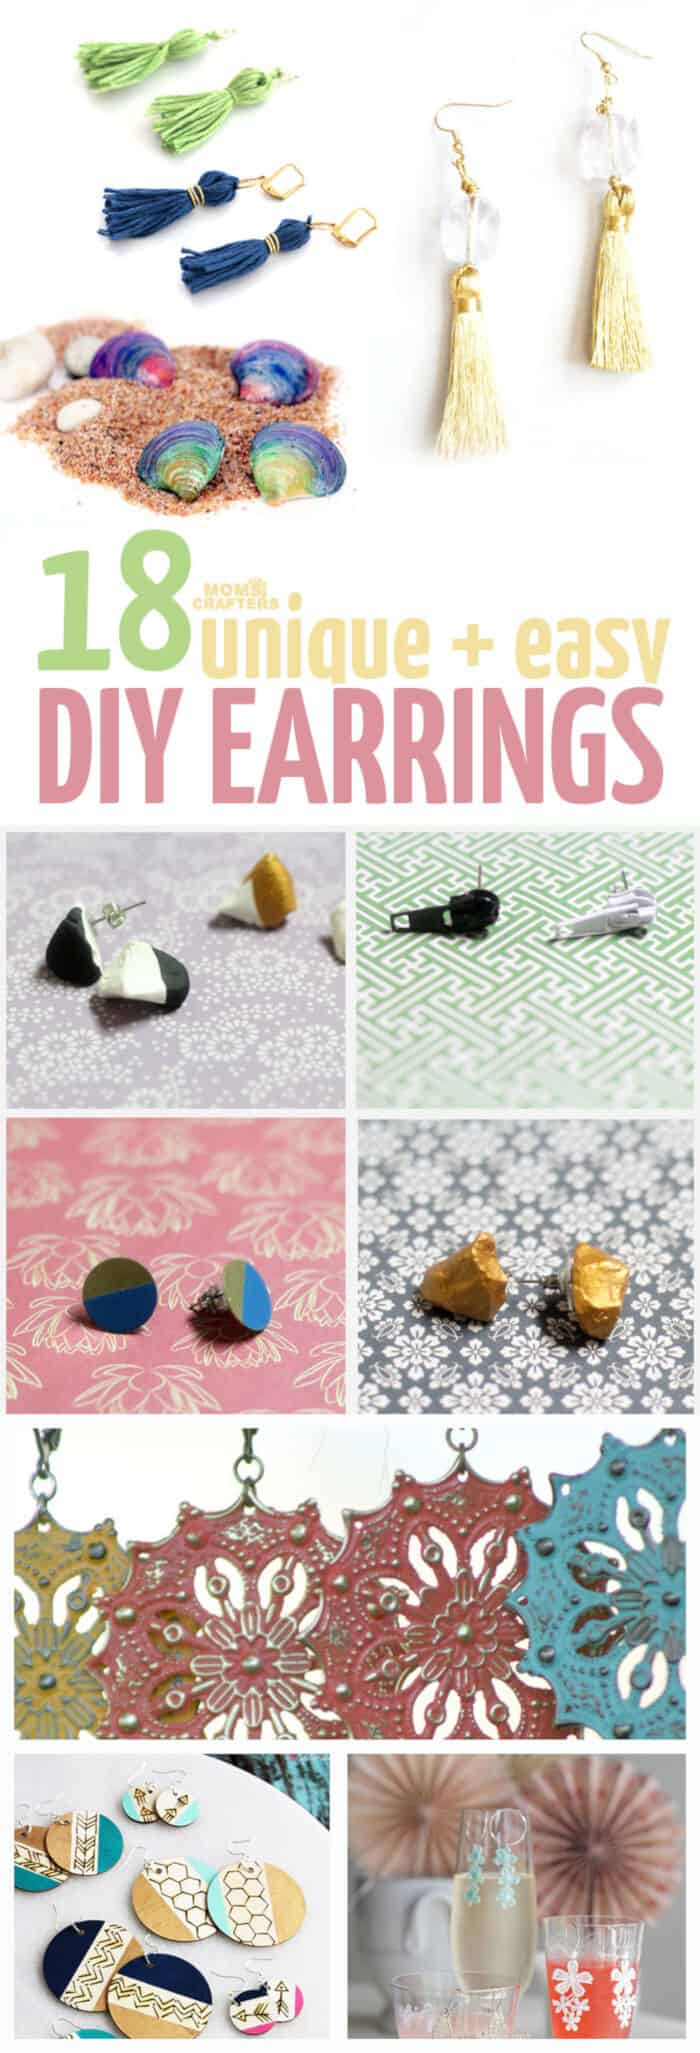 Easy DIY Earrings Ideas by Moms and Crafters